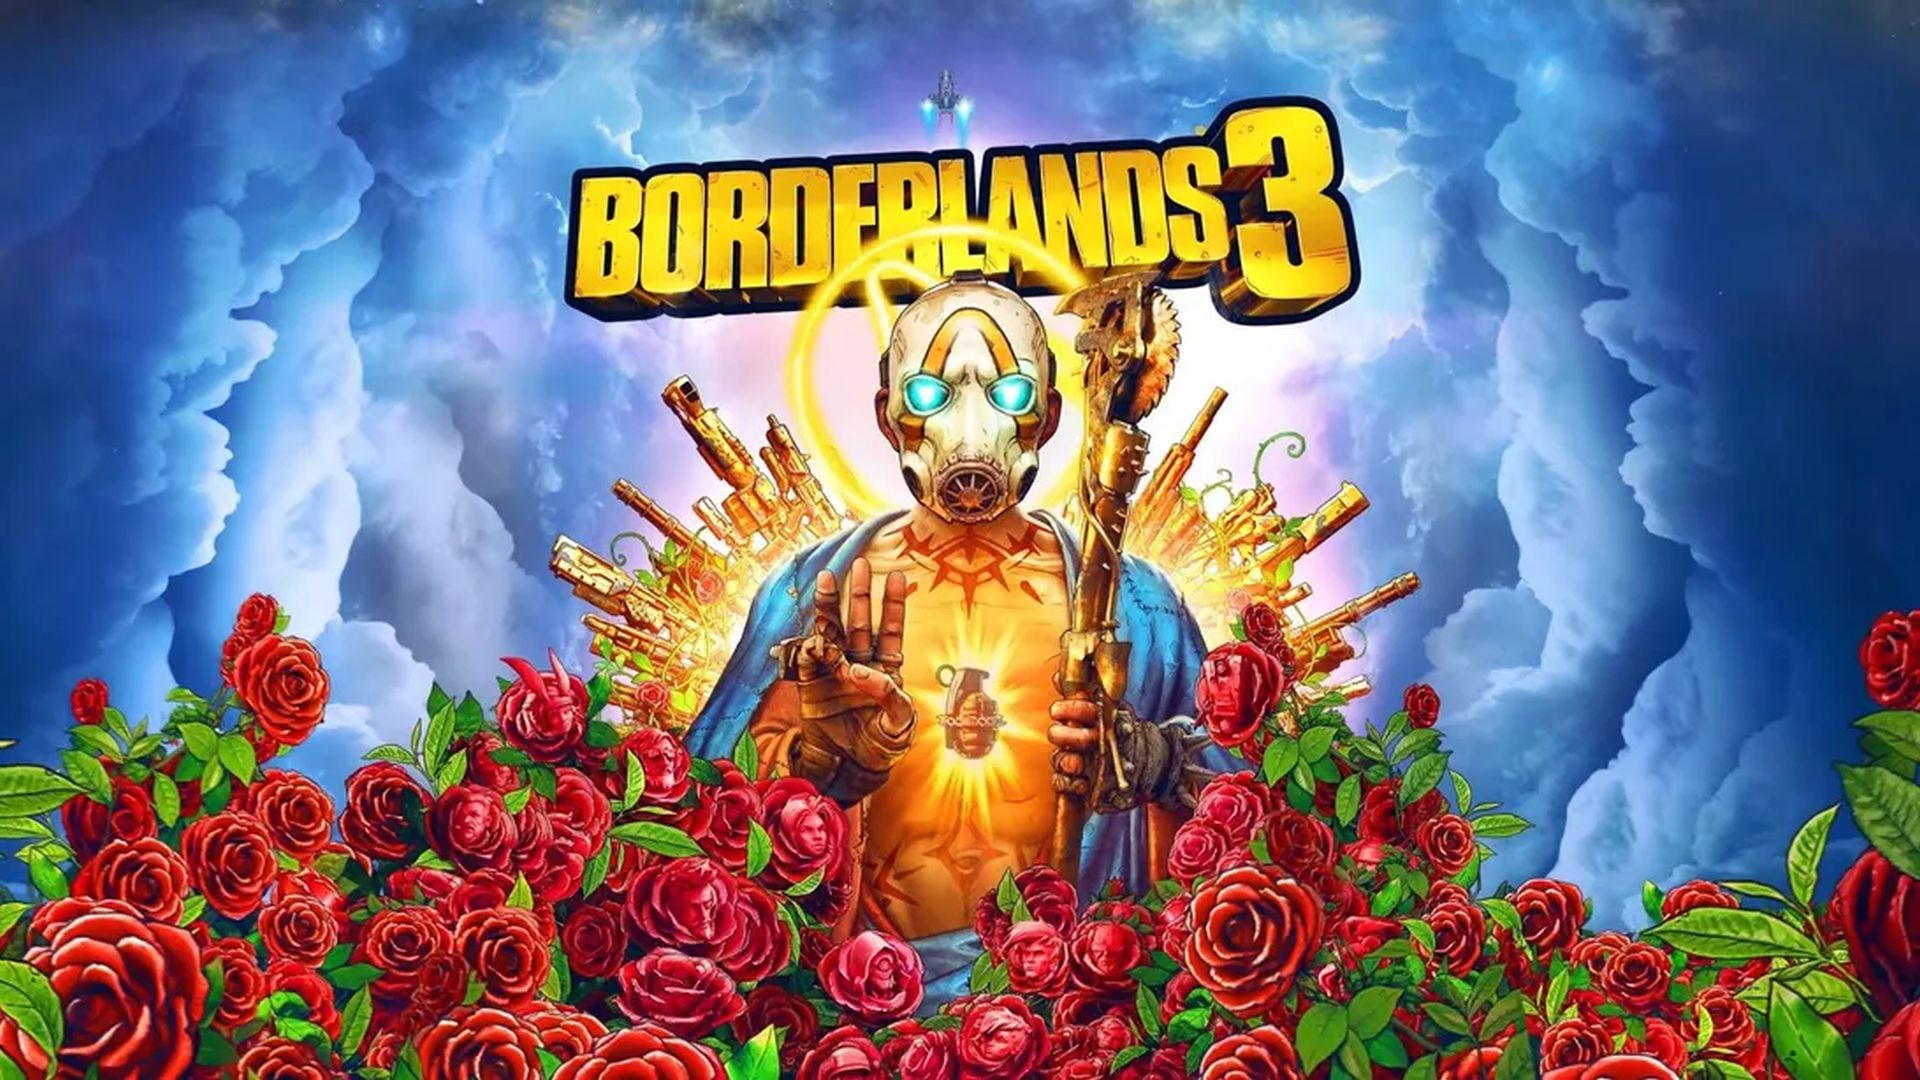 3 Borderlands Epic's exclusivity deal price $ 146 million